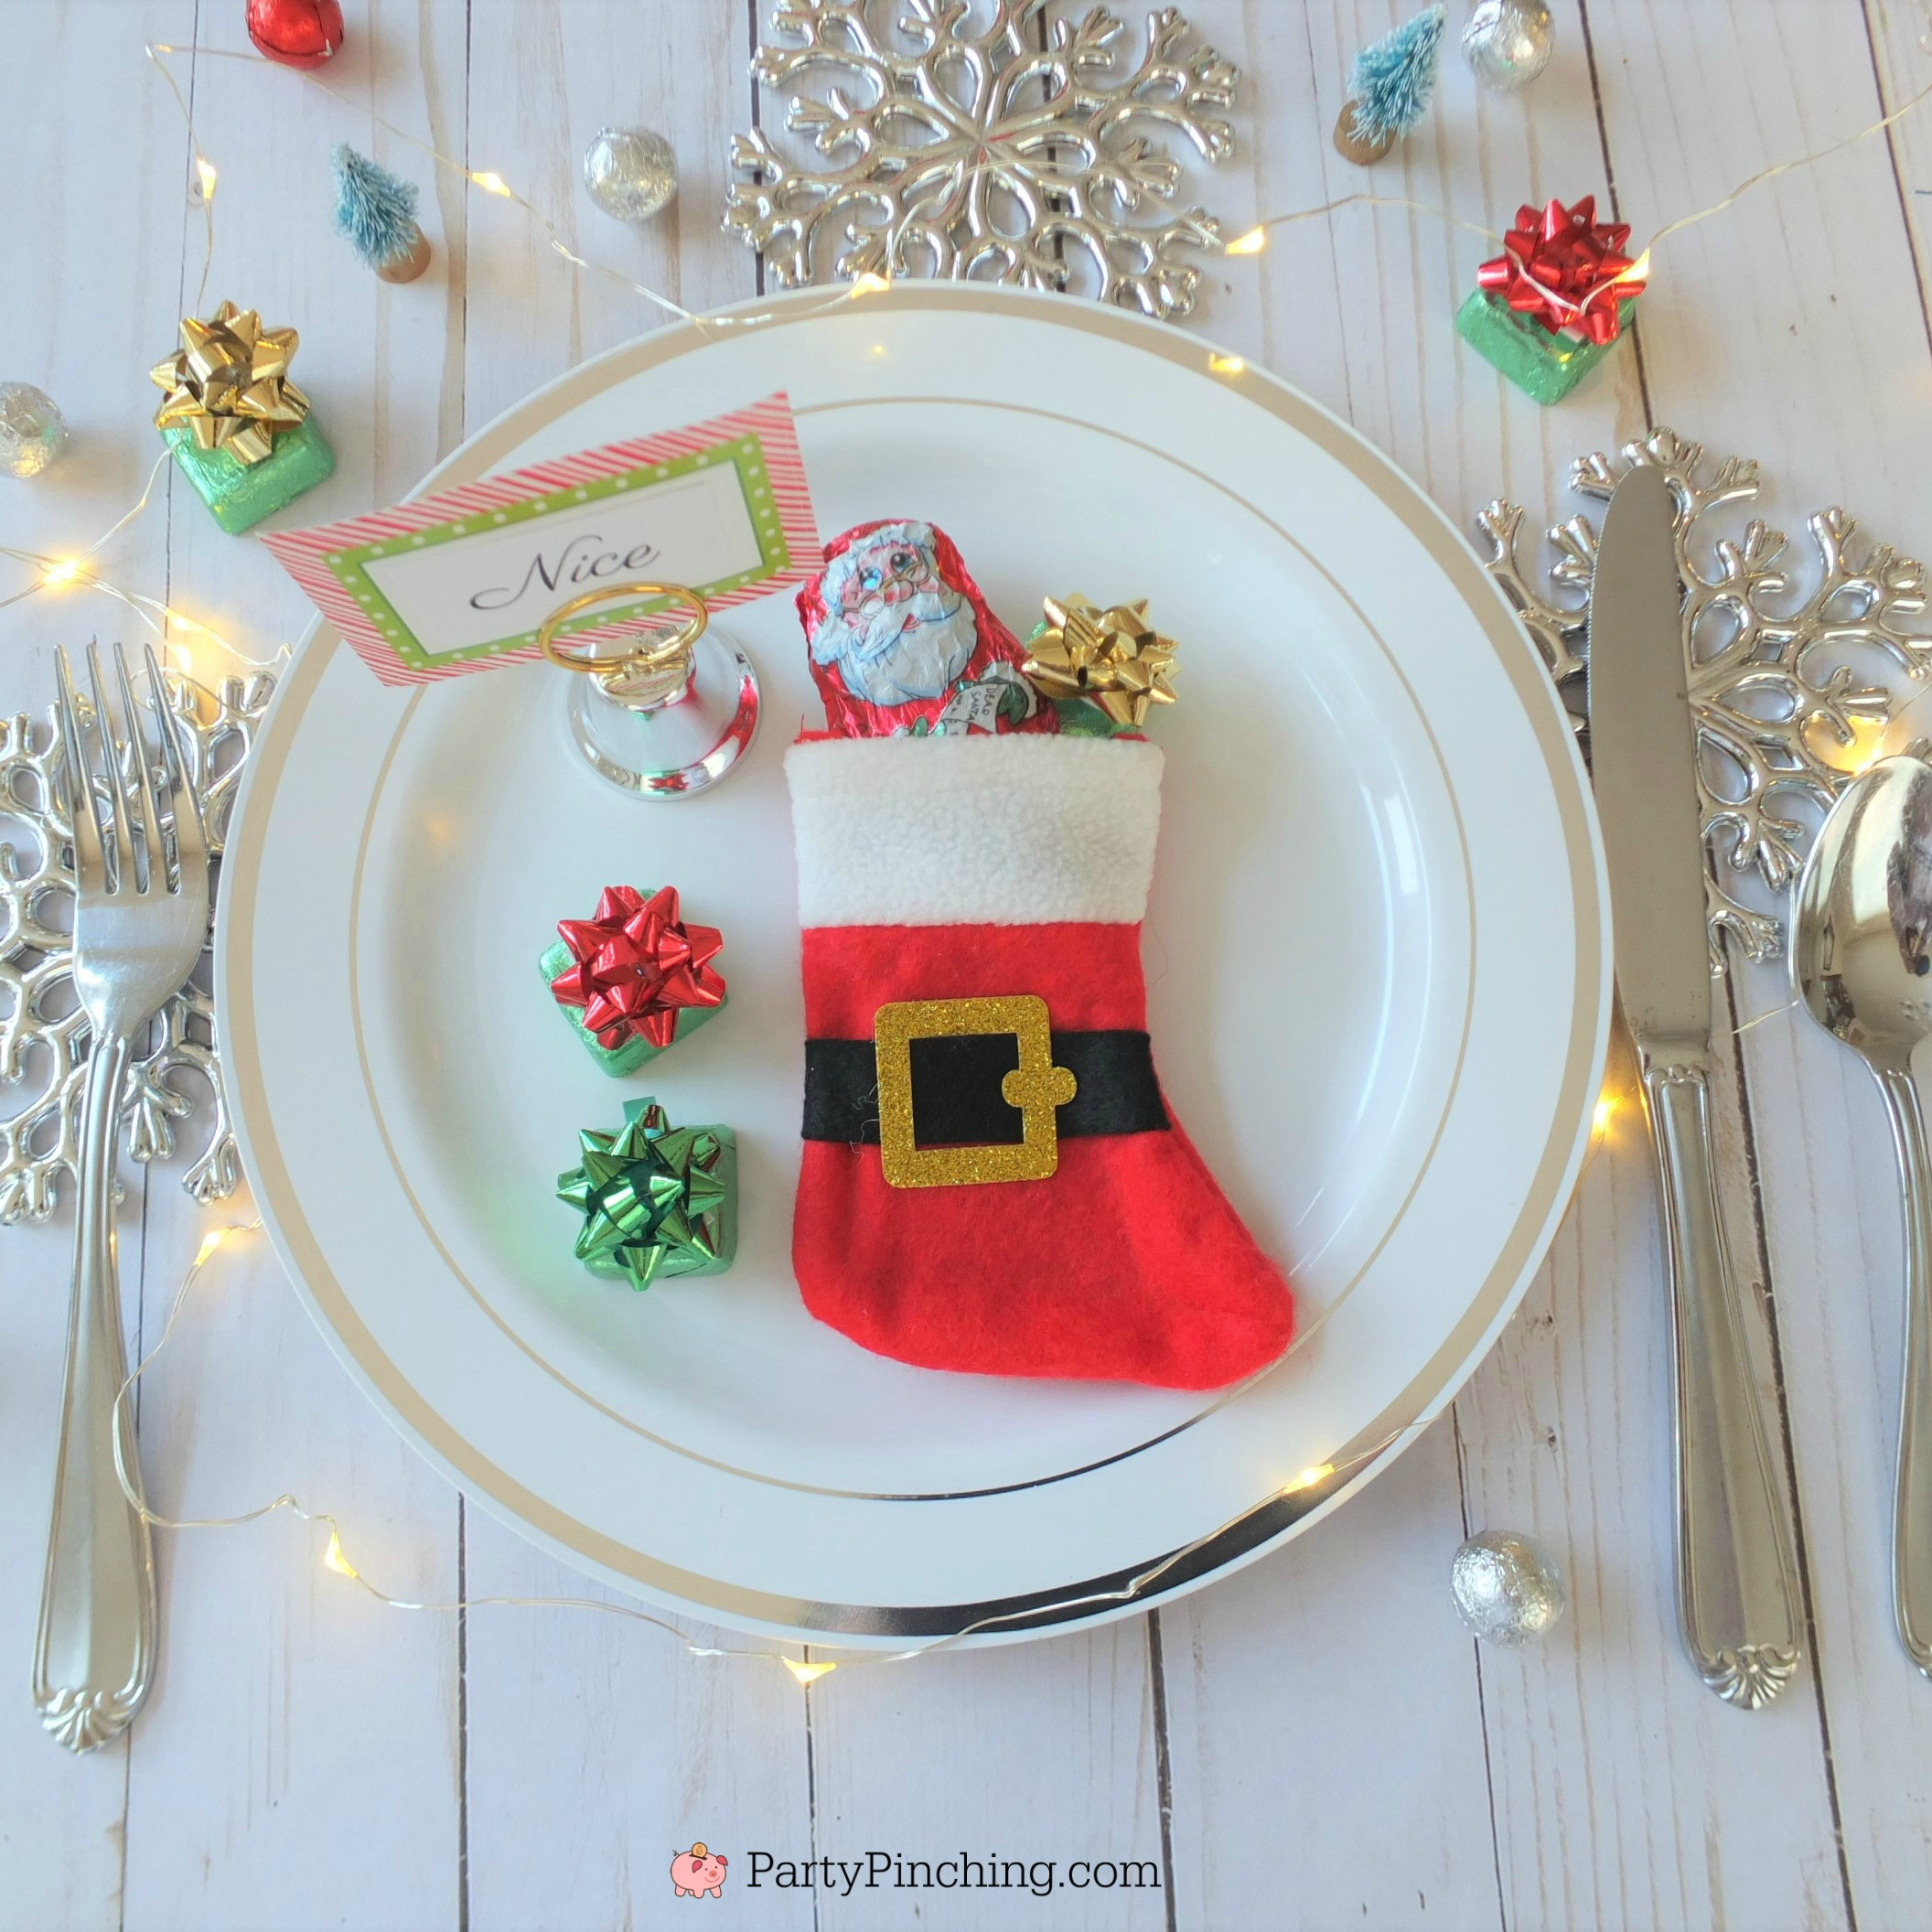 naughty and nice ideas for Christmas stockings, Christmas table setting ideas, cute Christmas dinner table ideas for the kids and family, lumps of coal candy, cute stocking stuffer ideas